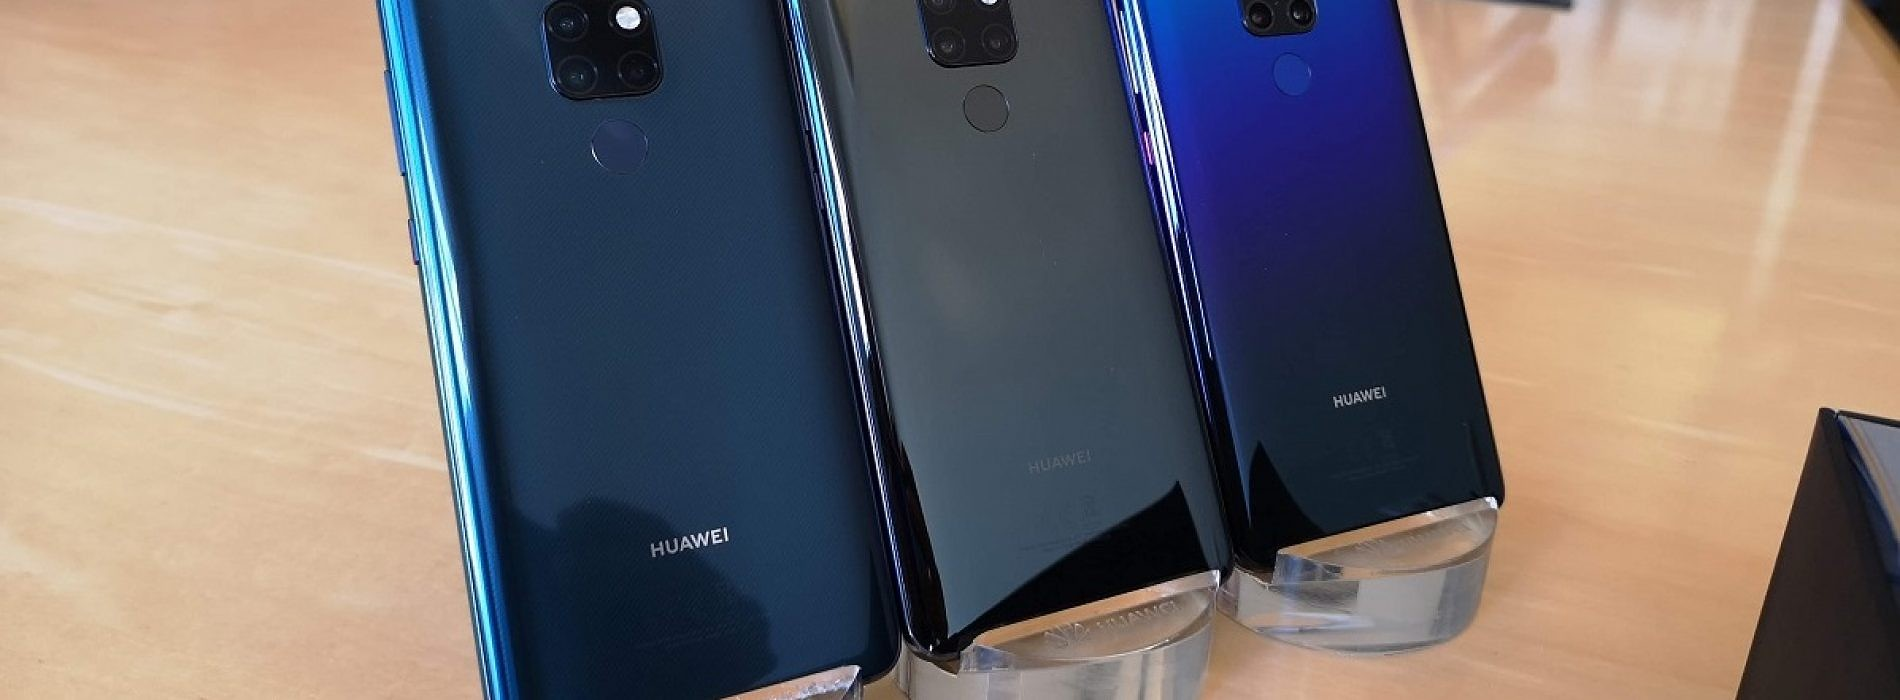 Huawei Mate 20 & Huawei Mate 20 Pro Specs, Pricing, and Availability